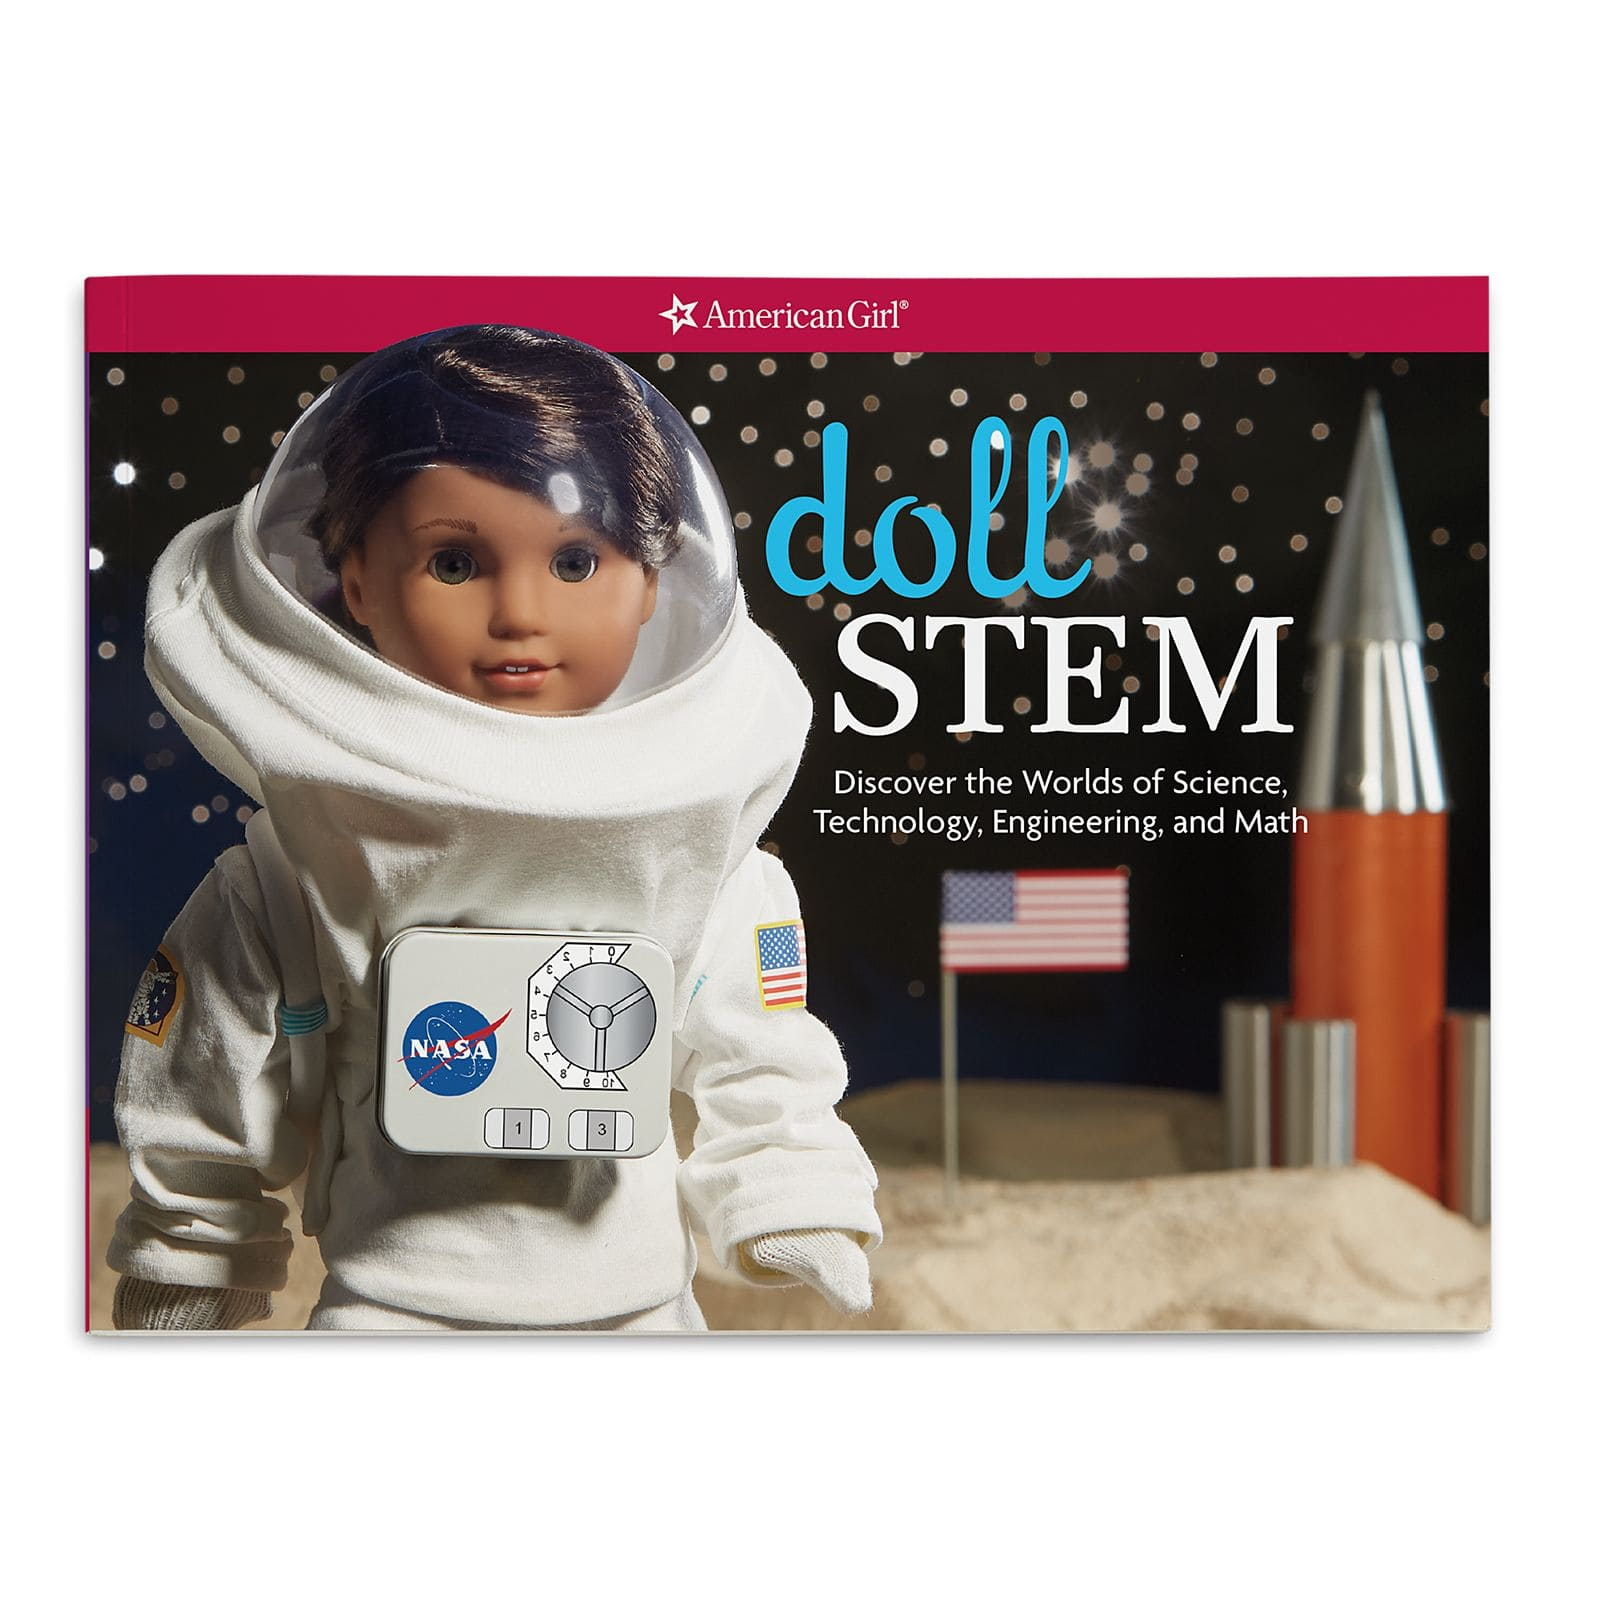 American Girl Doll STEM